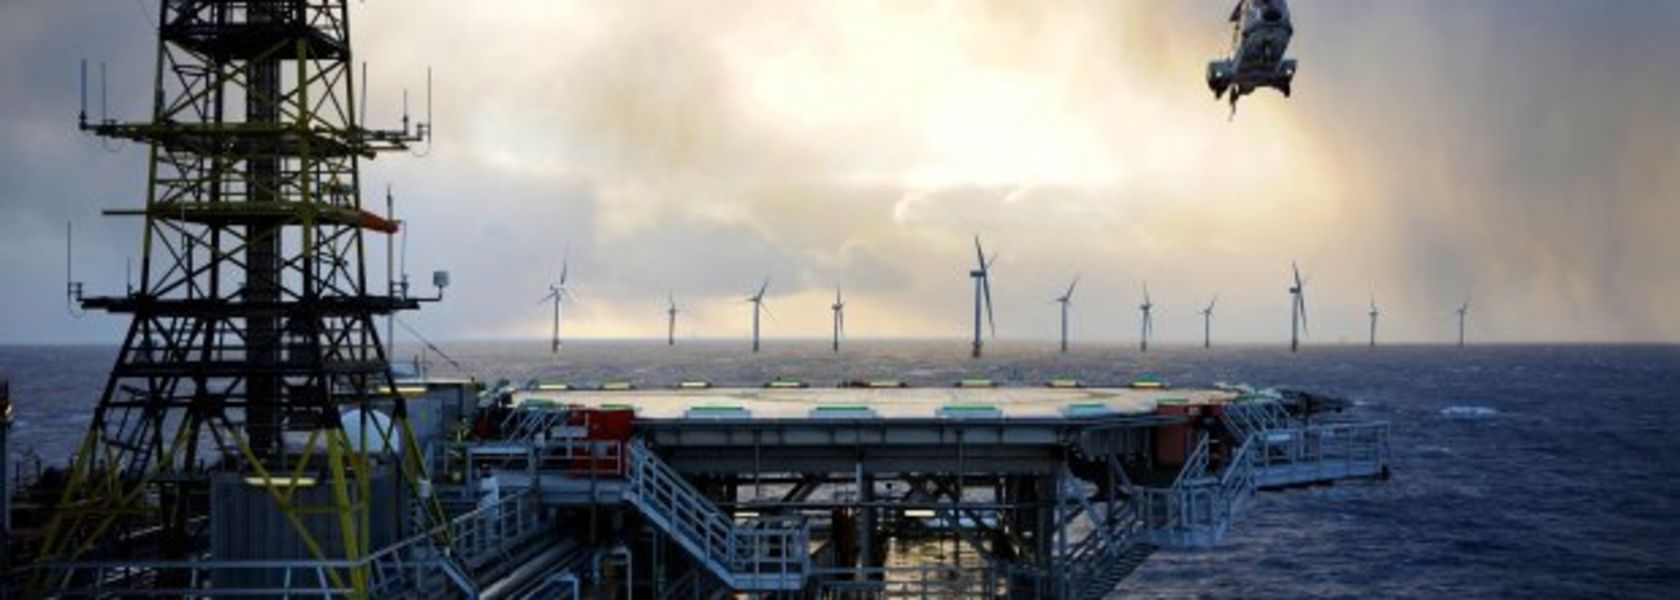 Equinor contracting for Hywind development